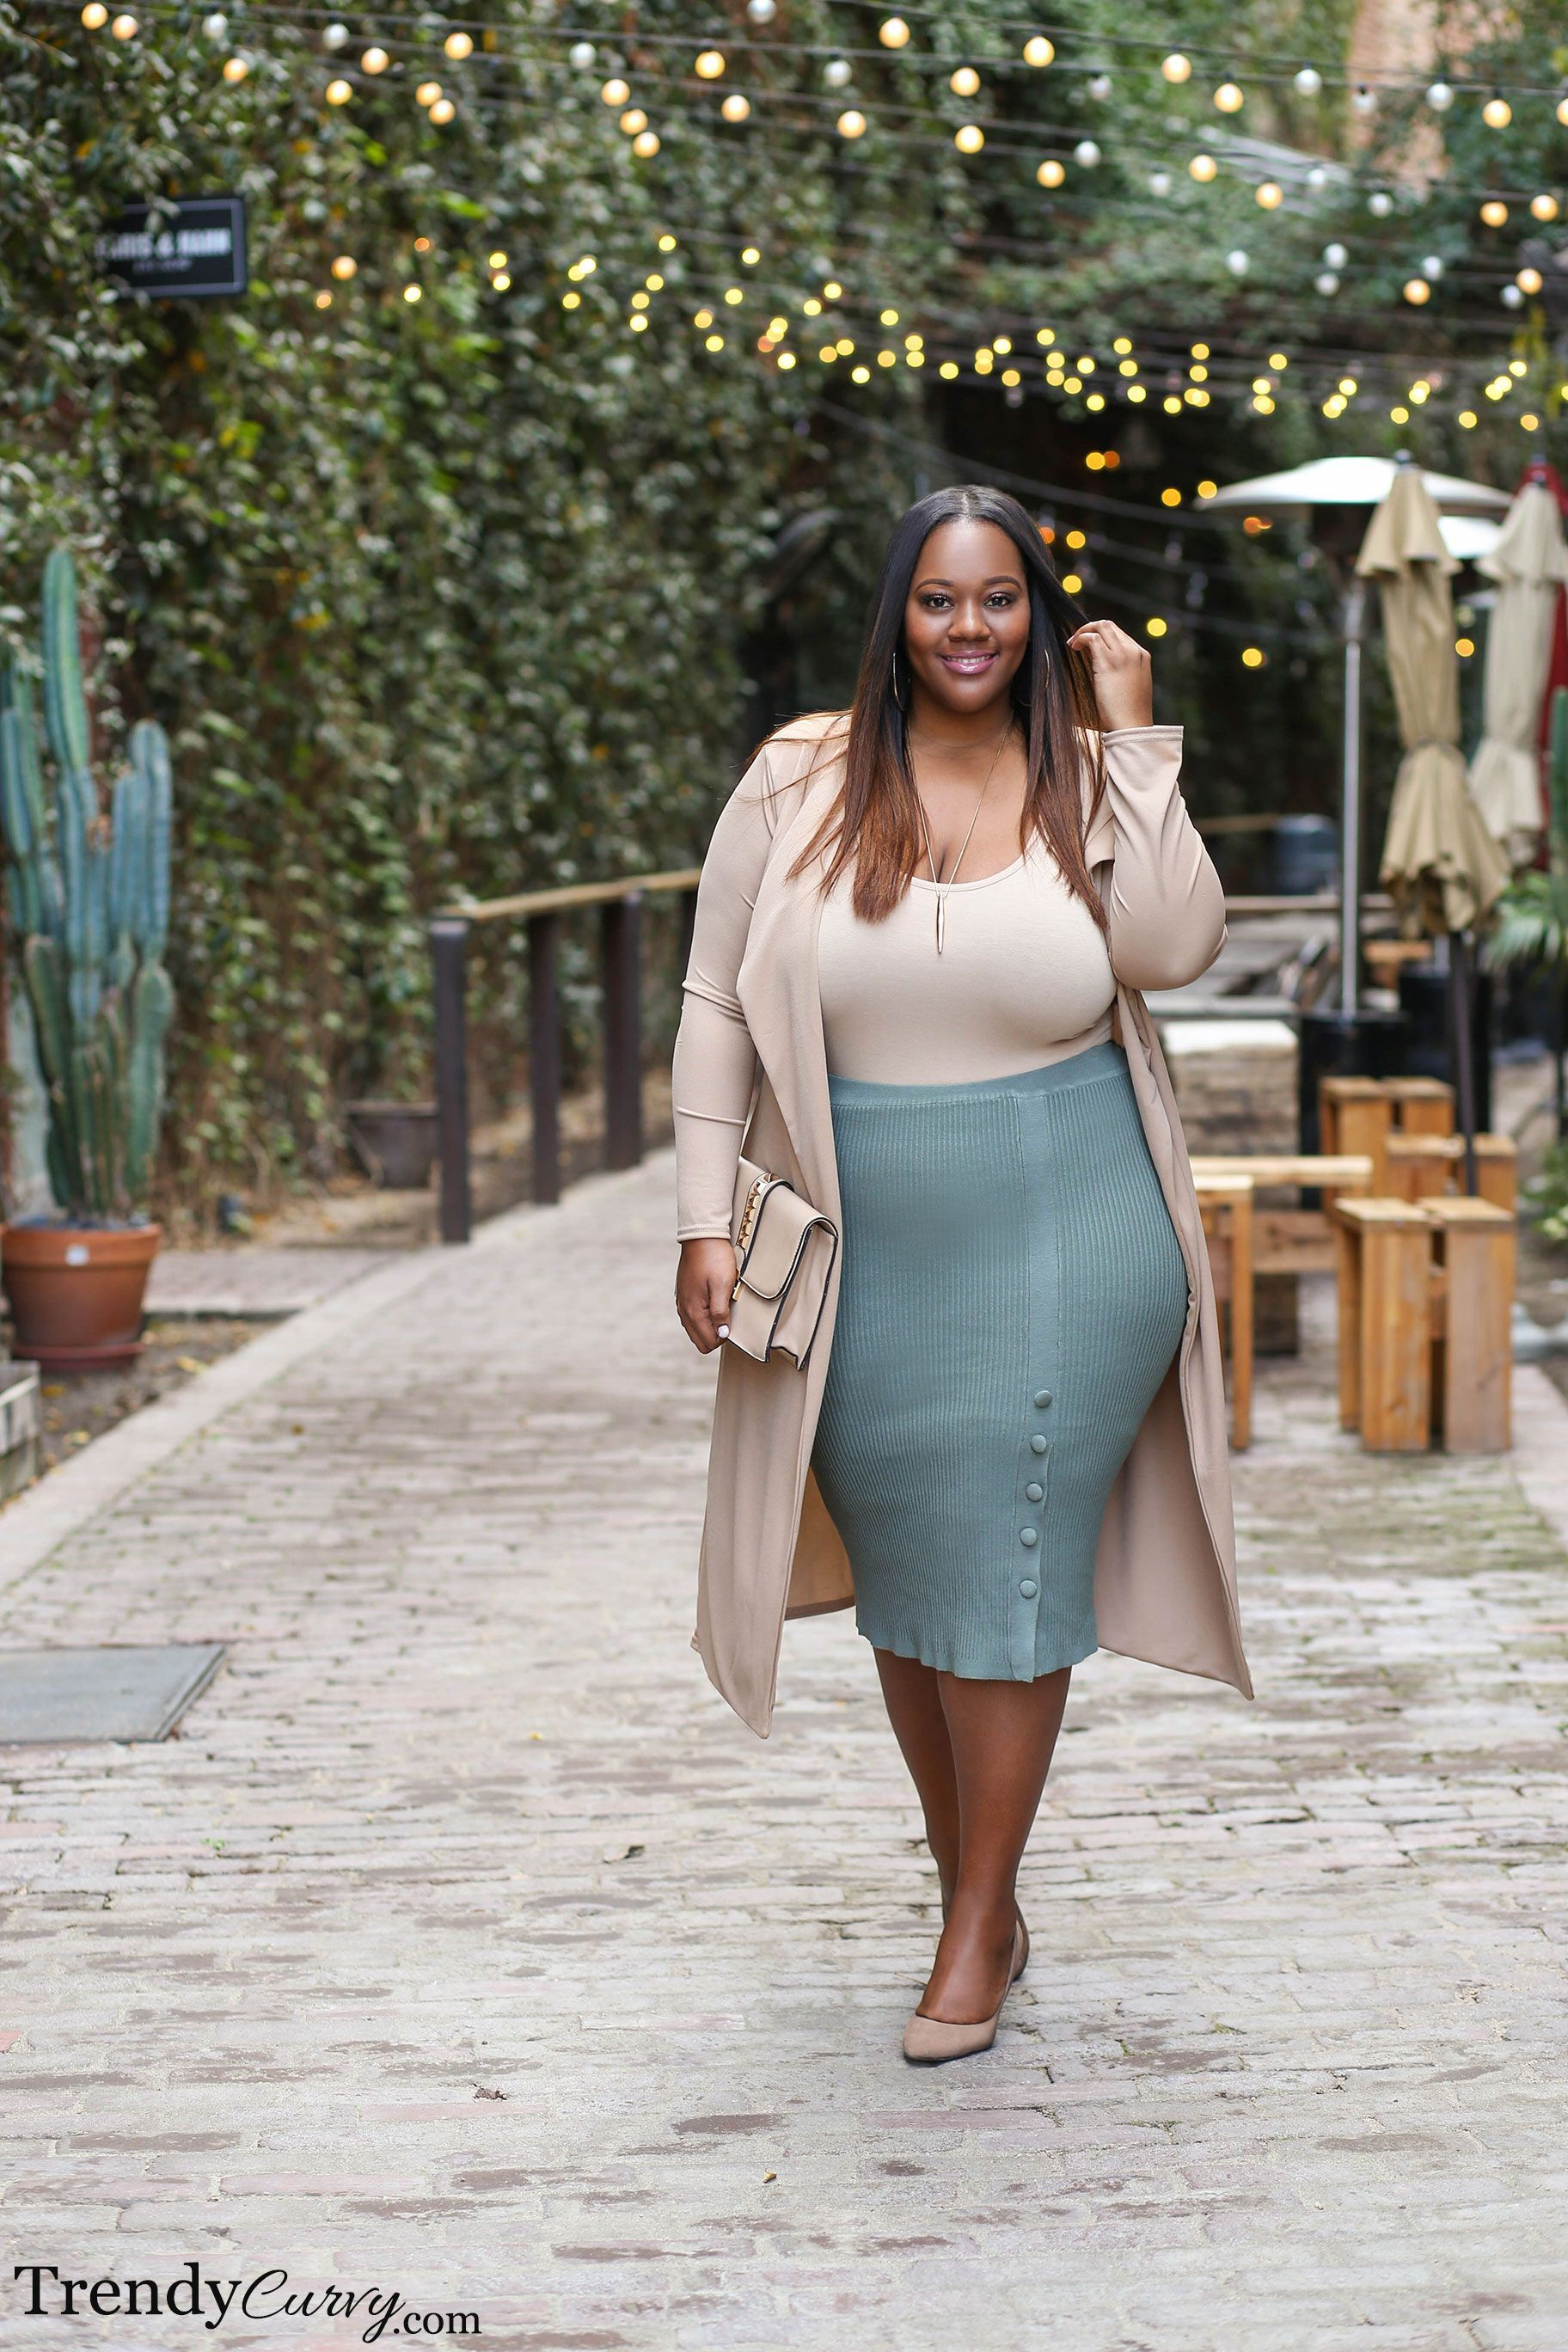 Must Experience these moti ladies, Ashley Graham